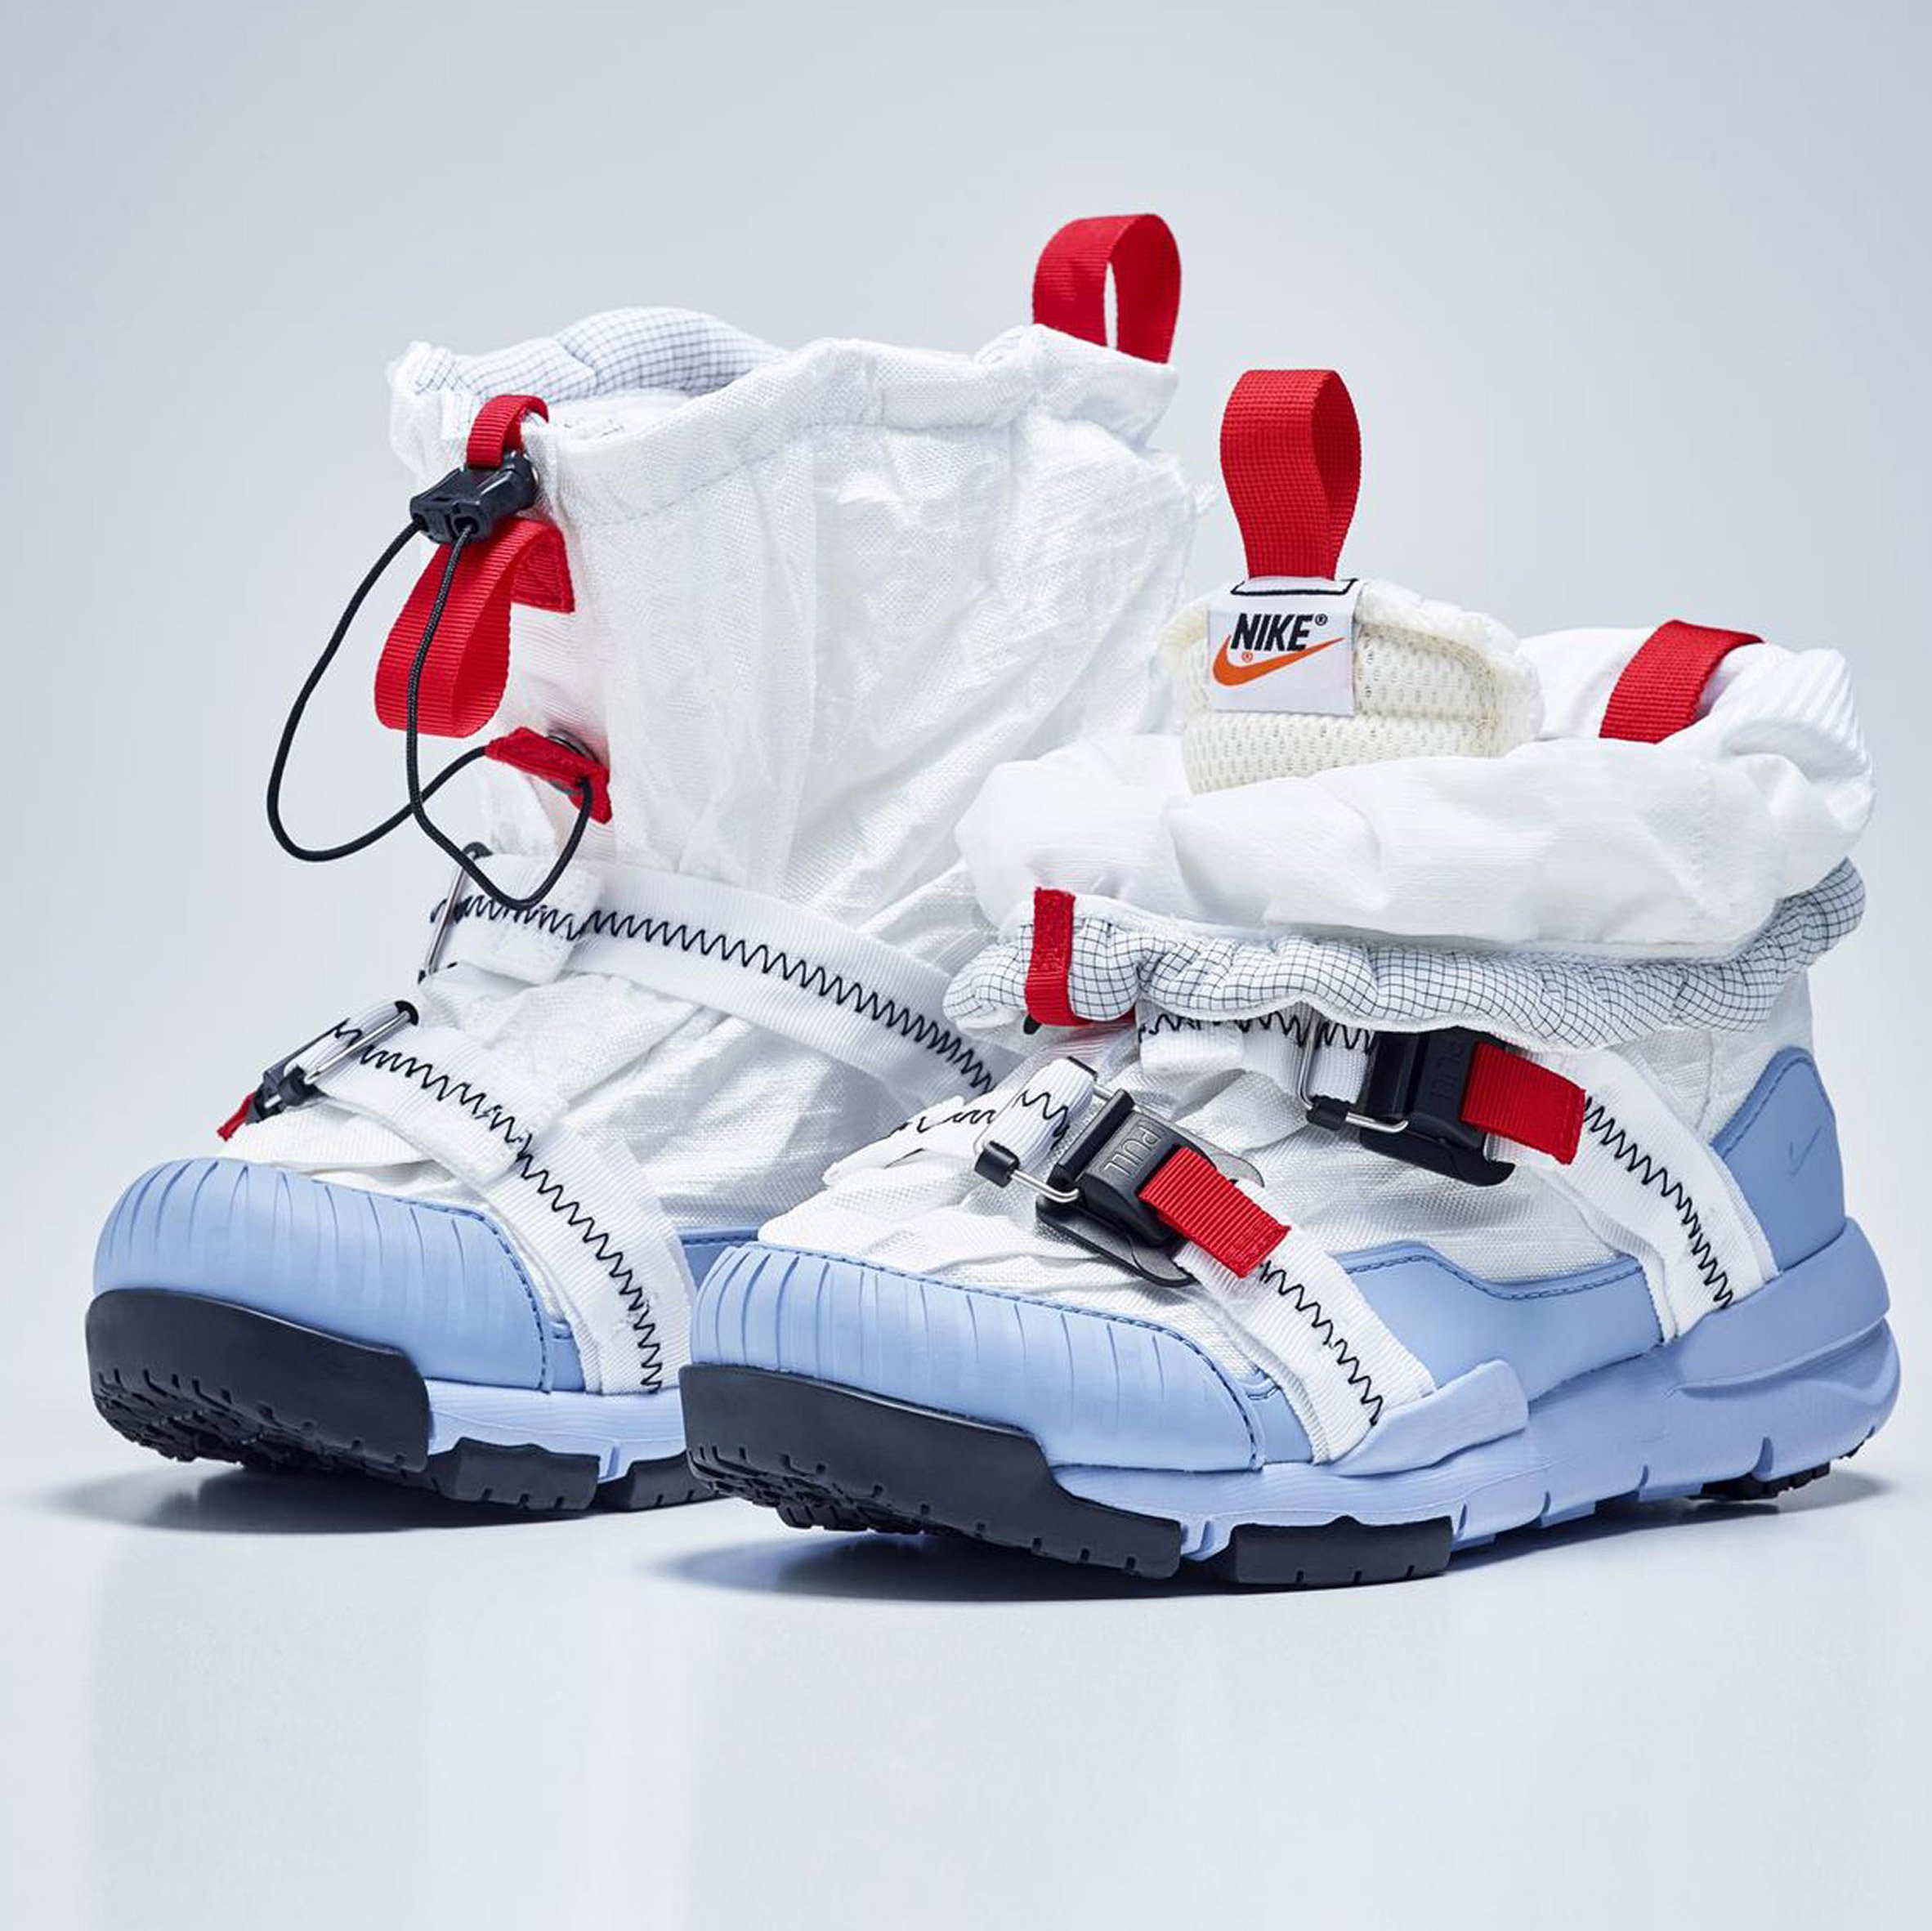 hot sale online 0a8c5 8fdae Tom Sachs updates Nike Mars Yard trainer to resemble shoes worn by  astronauts